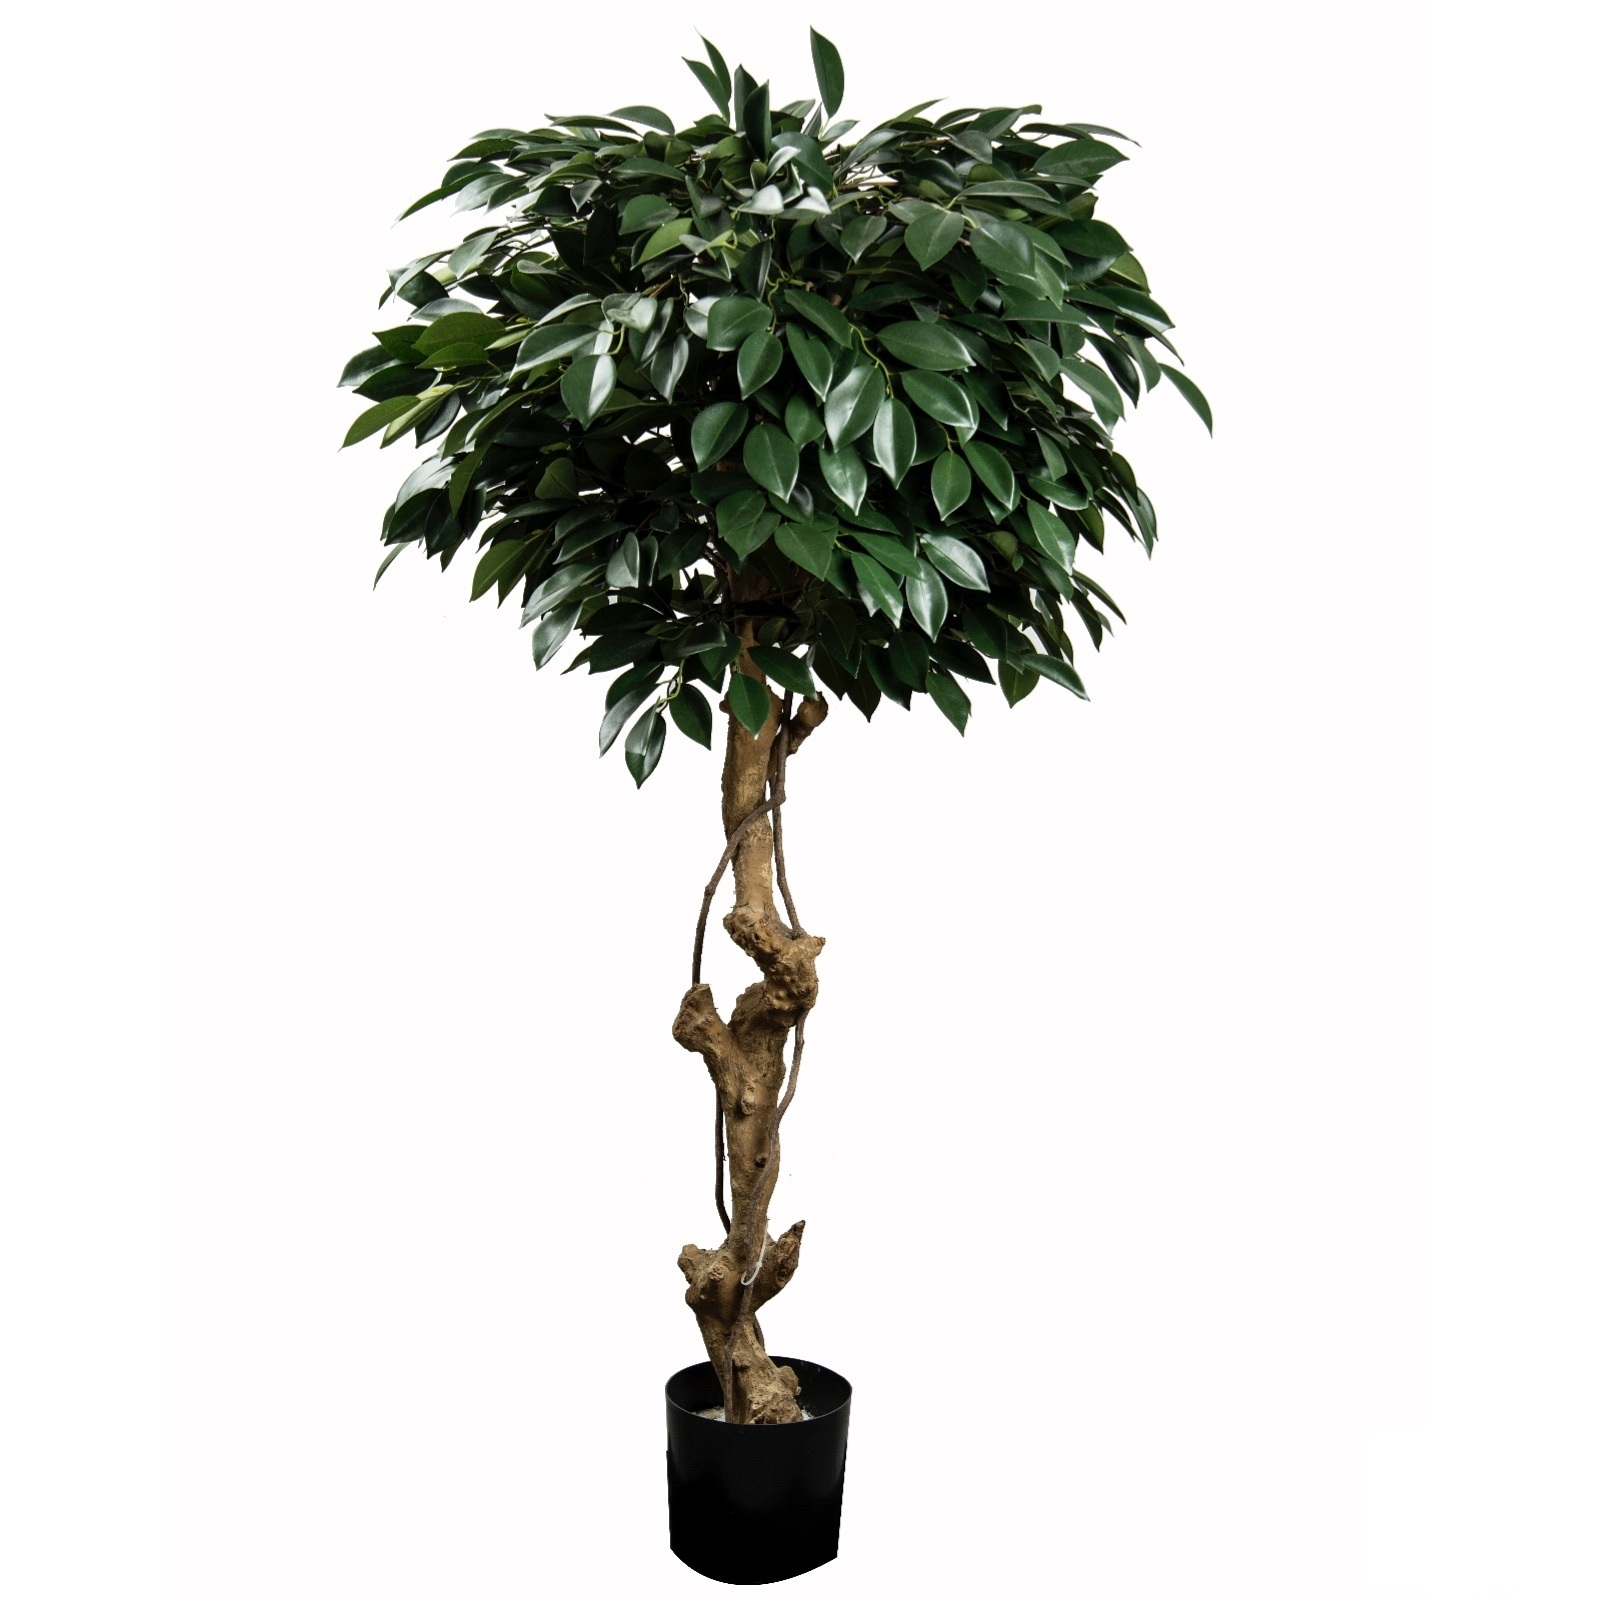 Gold Ficus Folia Tree Artificial Plants